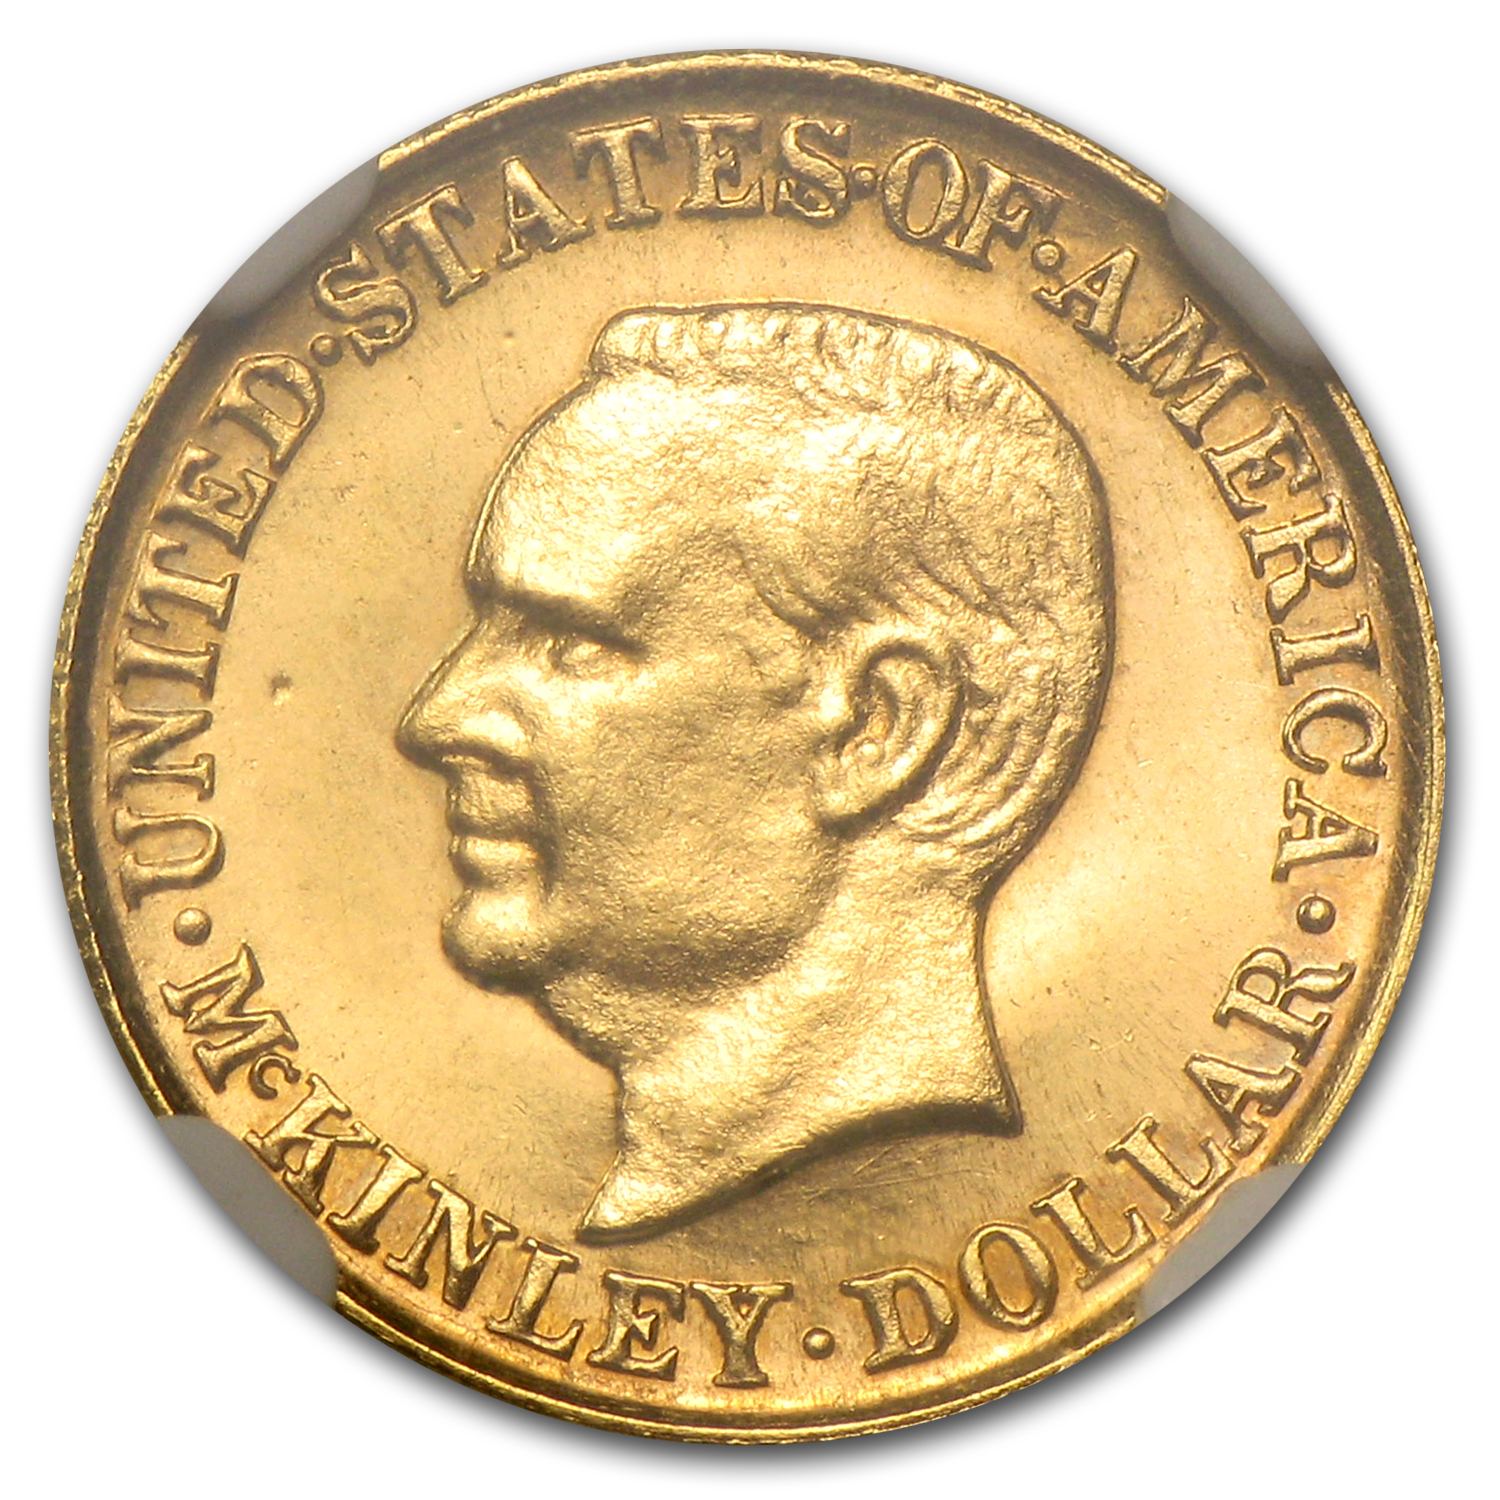 1916 Gold $1.00 McKinley MS-65 &#9733 Star NGC